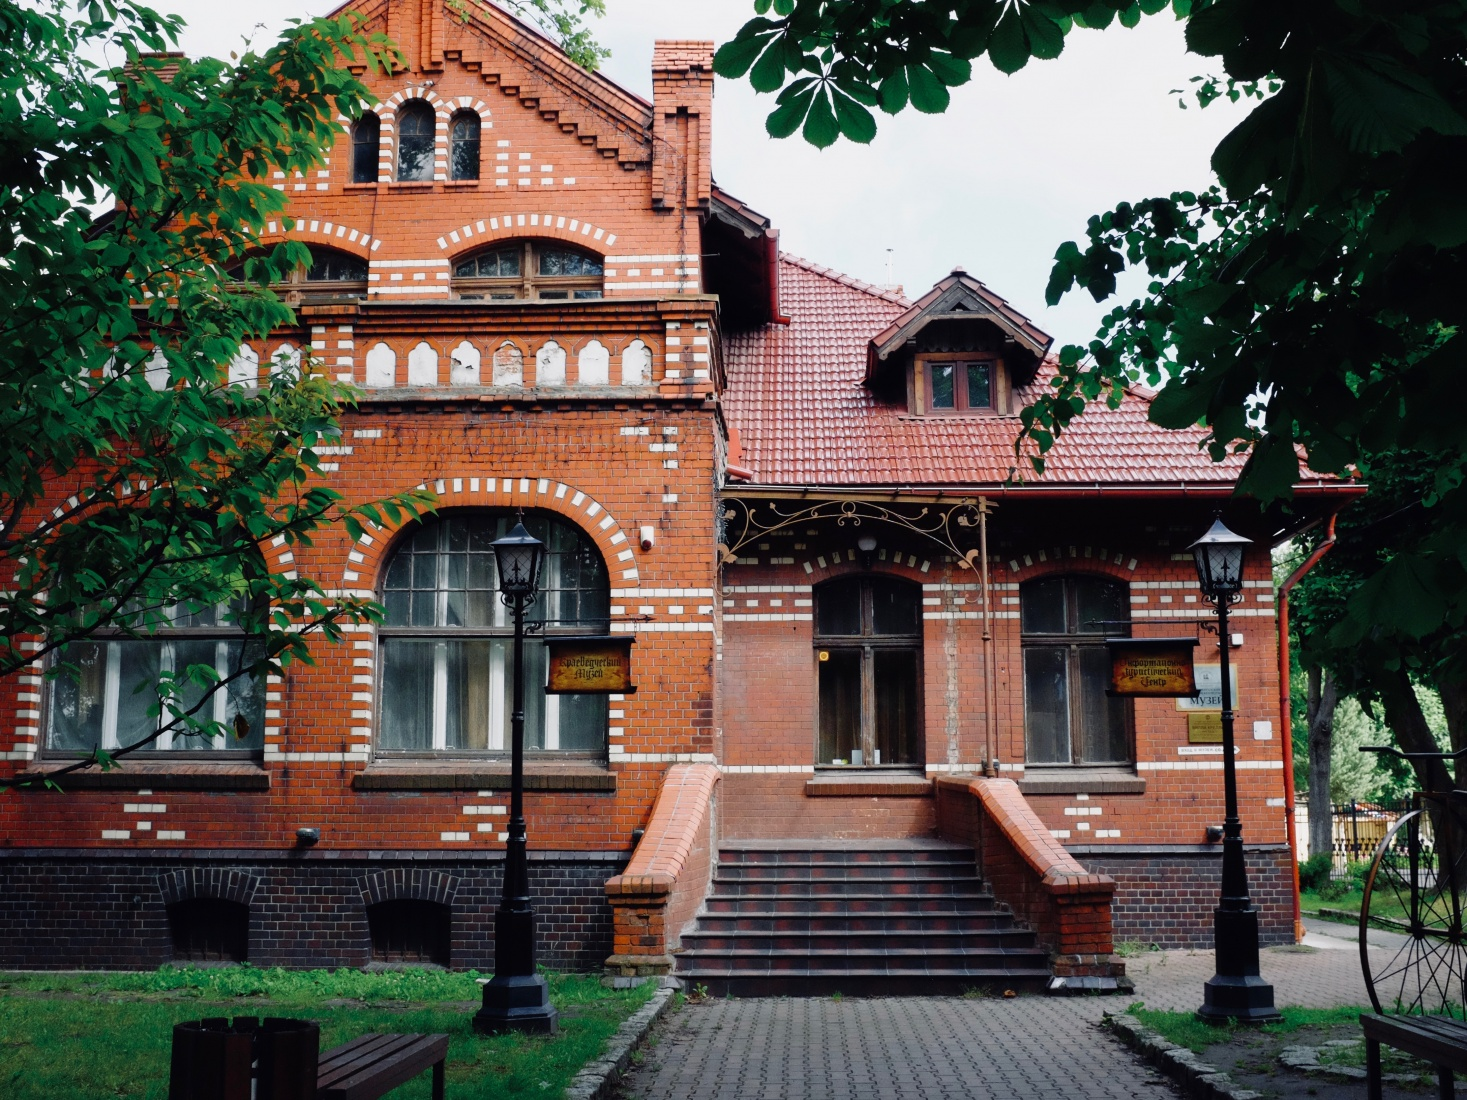 Surviving old red brick Prussian buildings in Zelenogradsk, outside Kaliningrad, Russia.